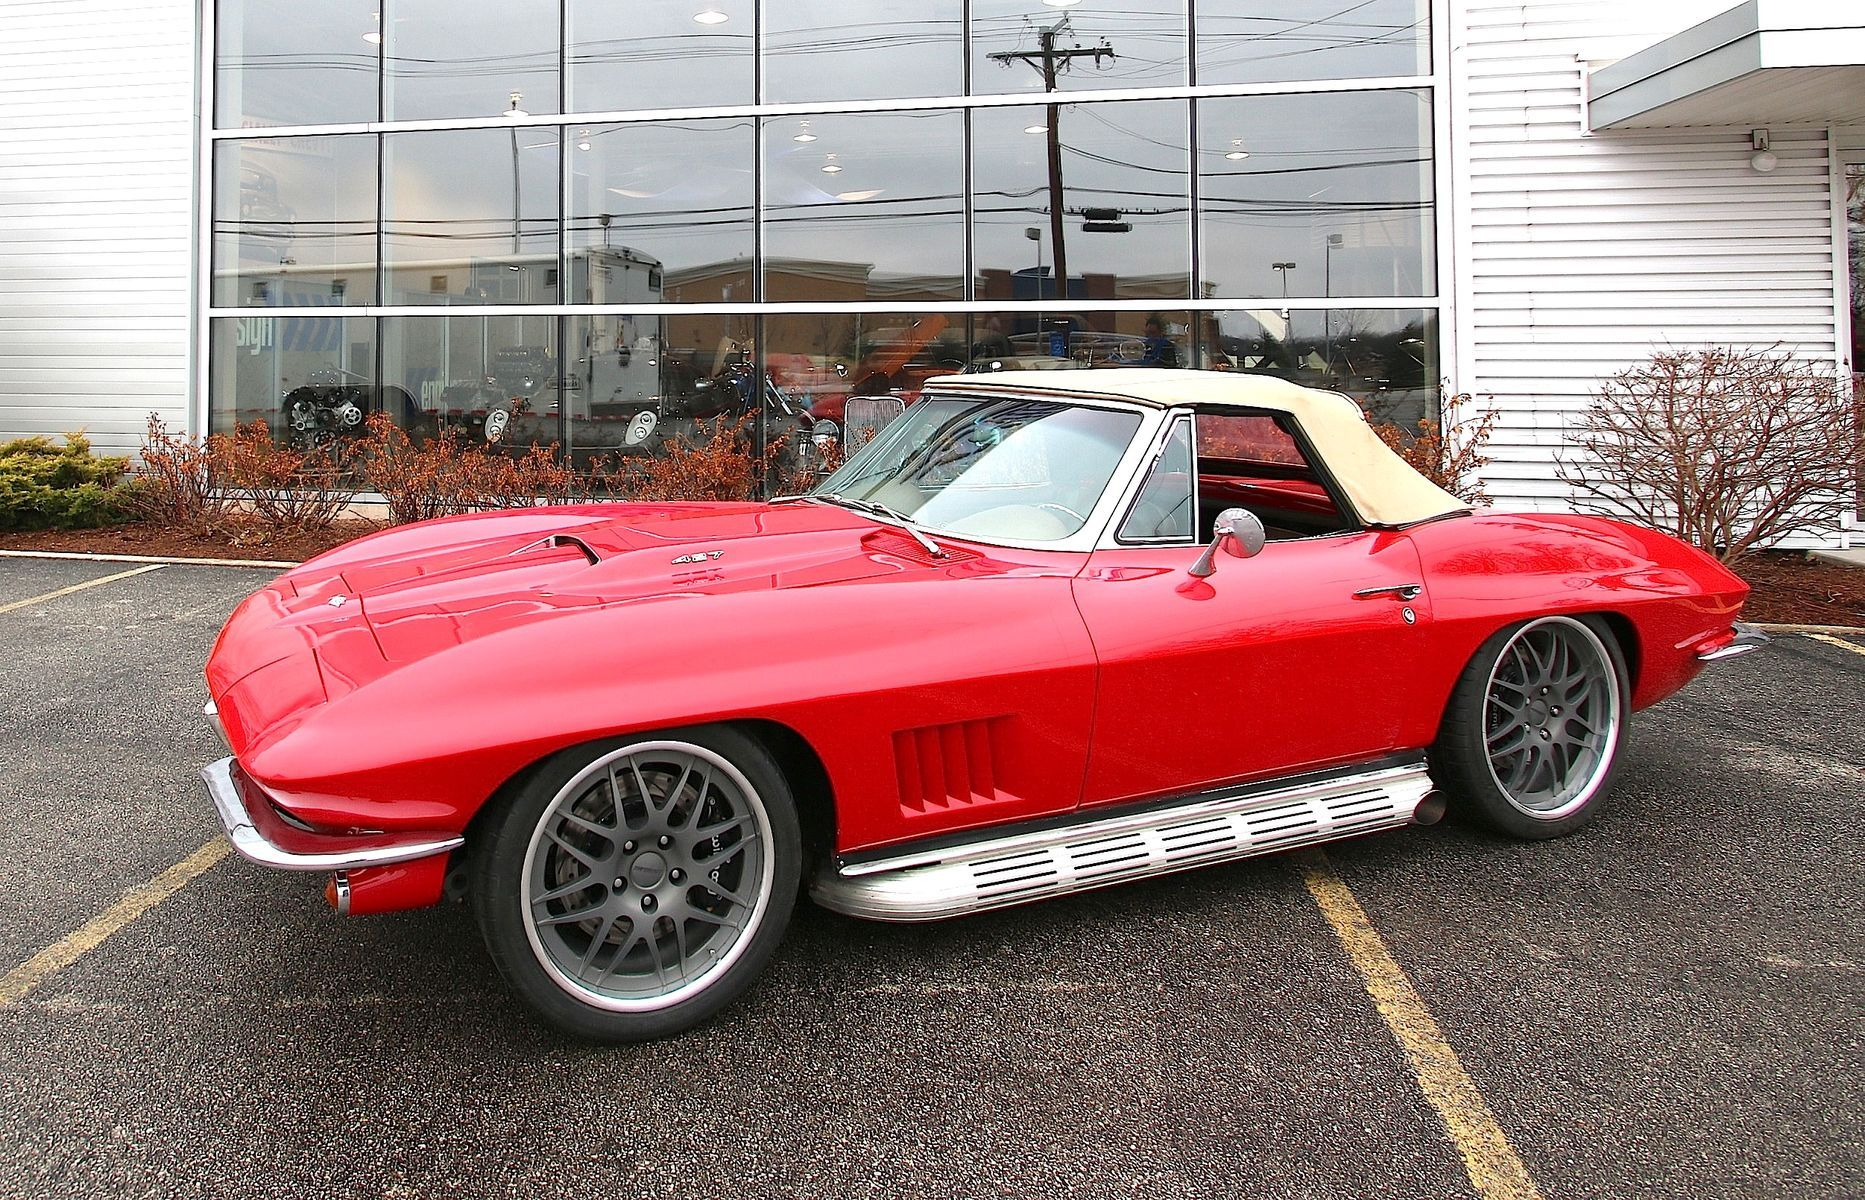 1967 Chevrolet Corvette | Jame's 1967 Corvette Convertible on Forgeline DE3P Wheels